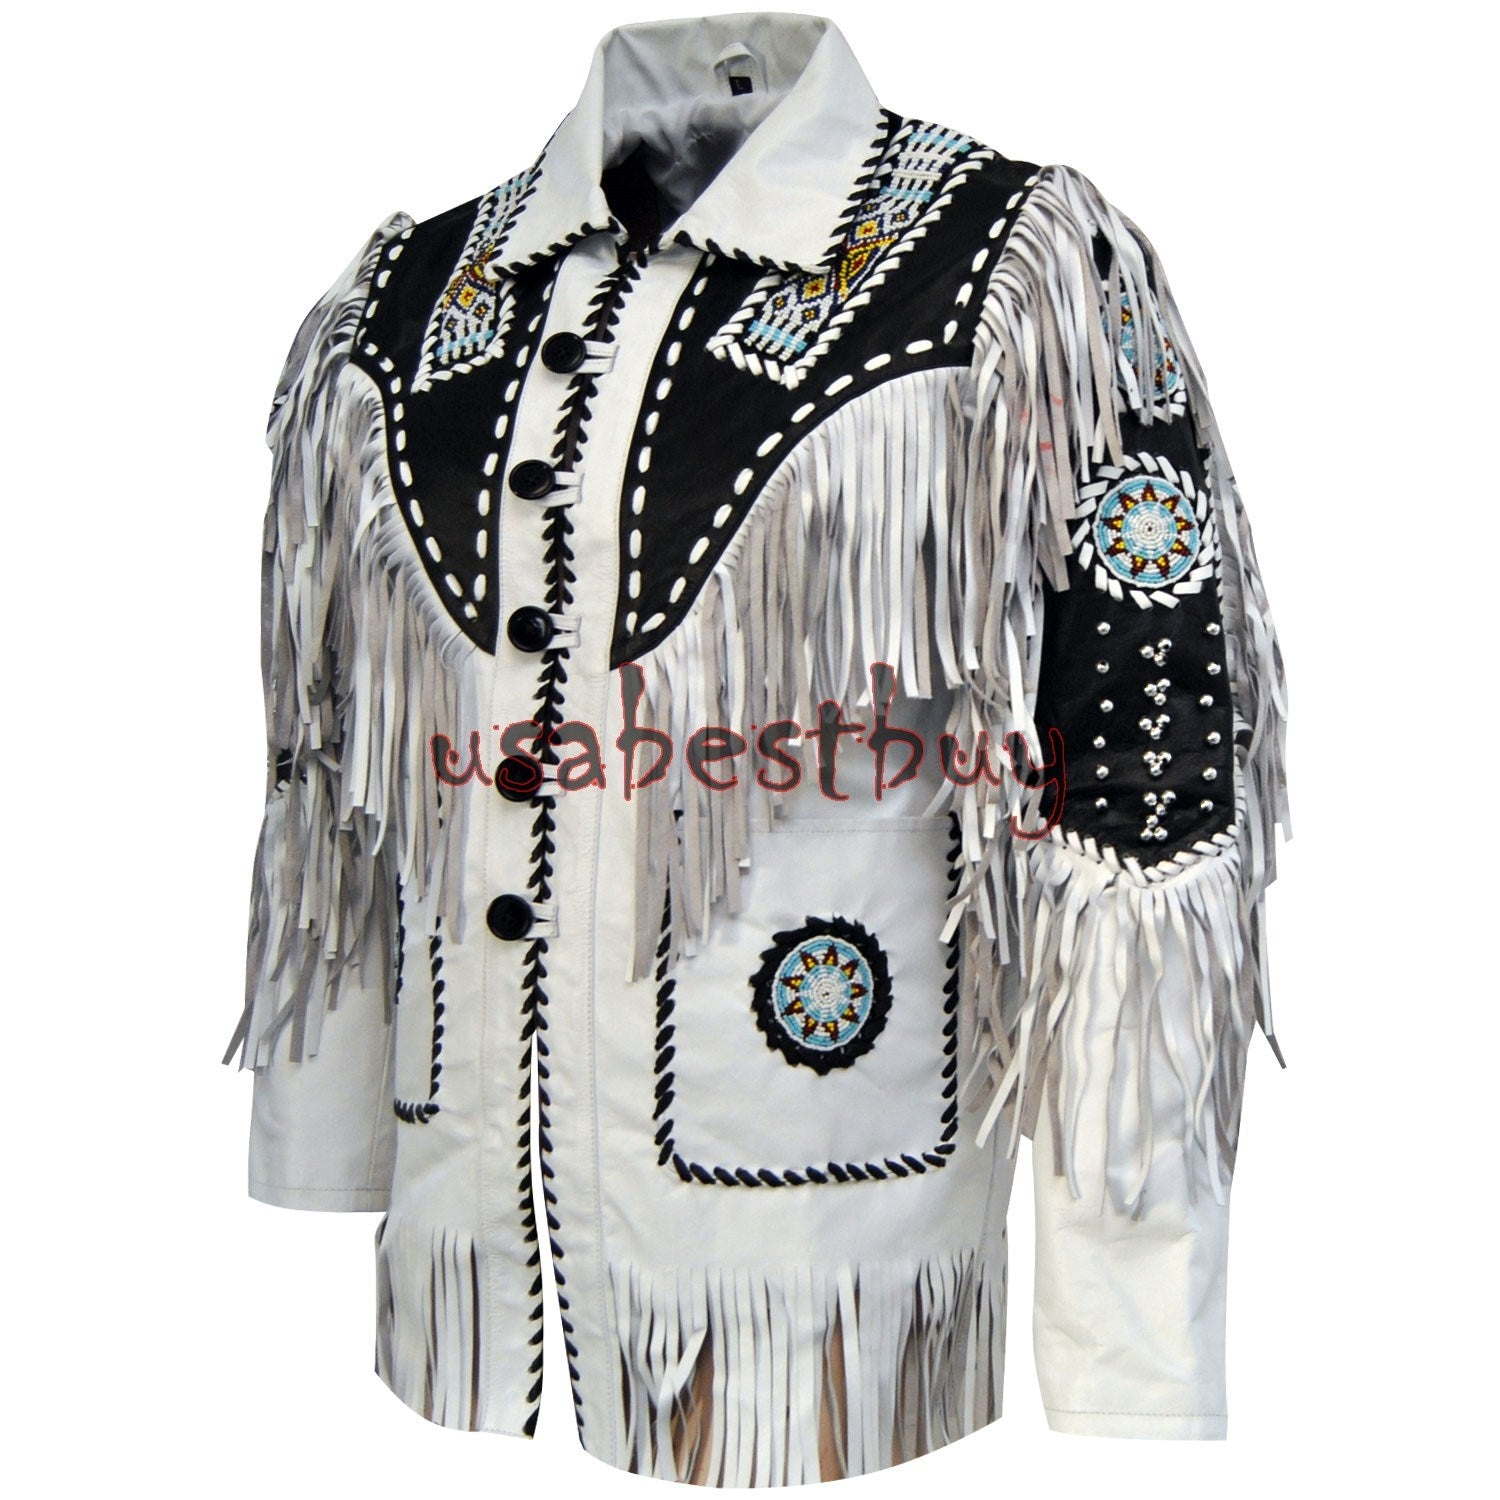 Handmade Men White Cow Leather Western Cowboy Jacket With Fringe, Bone and Beads